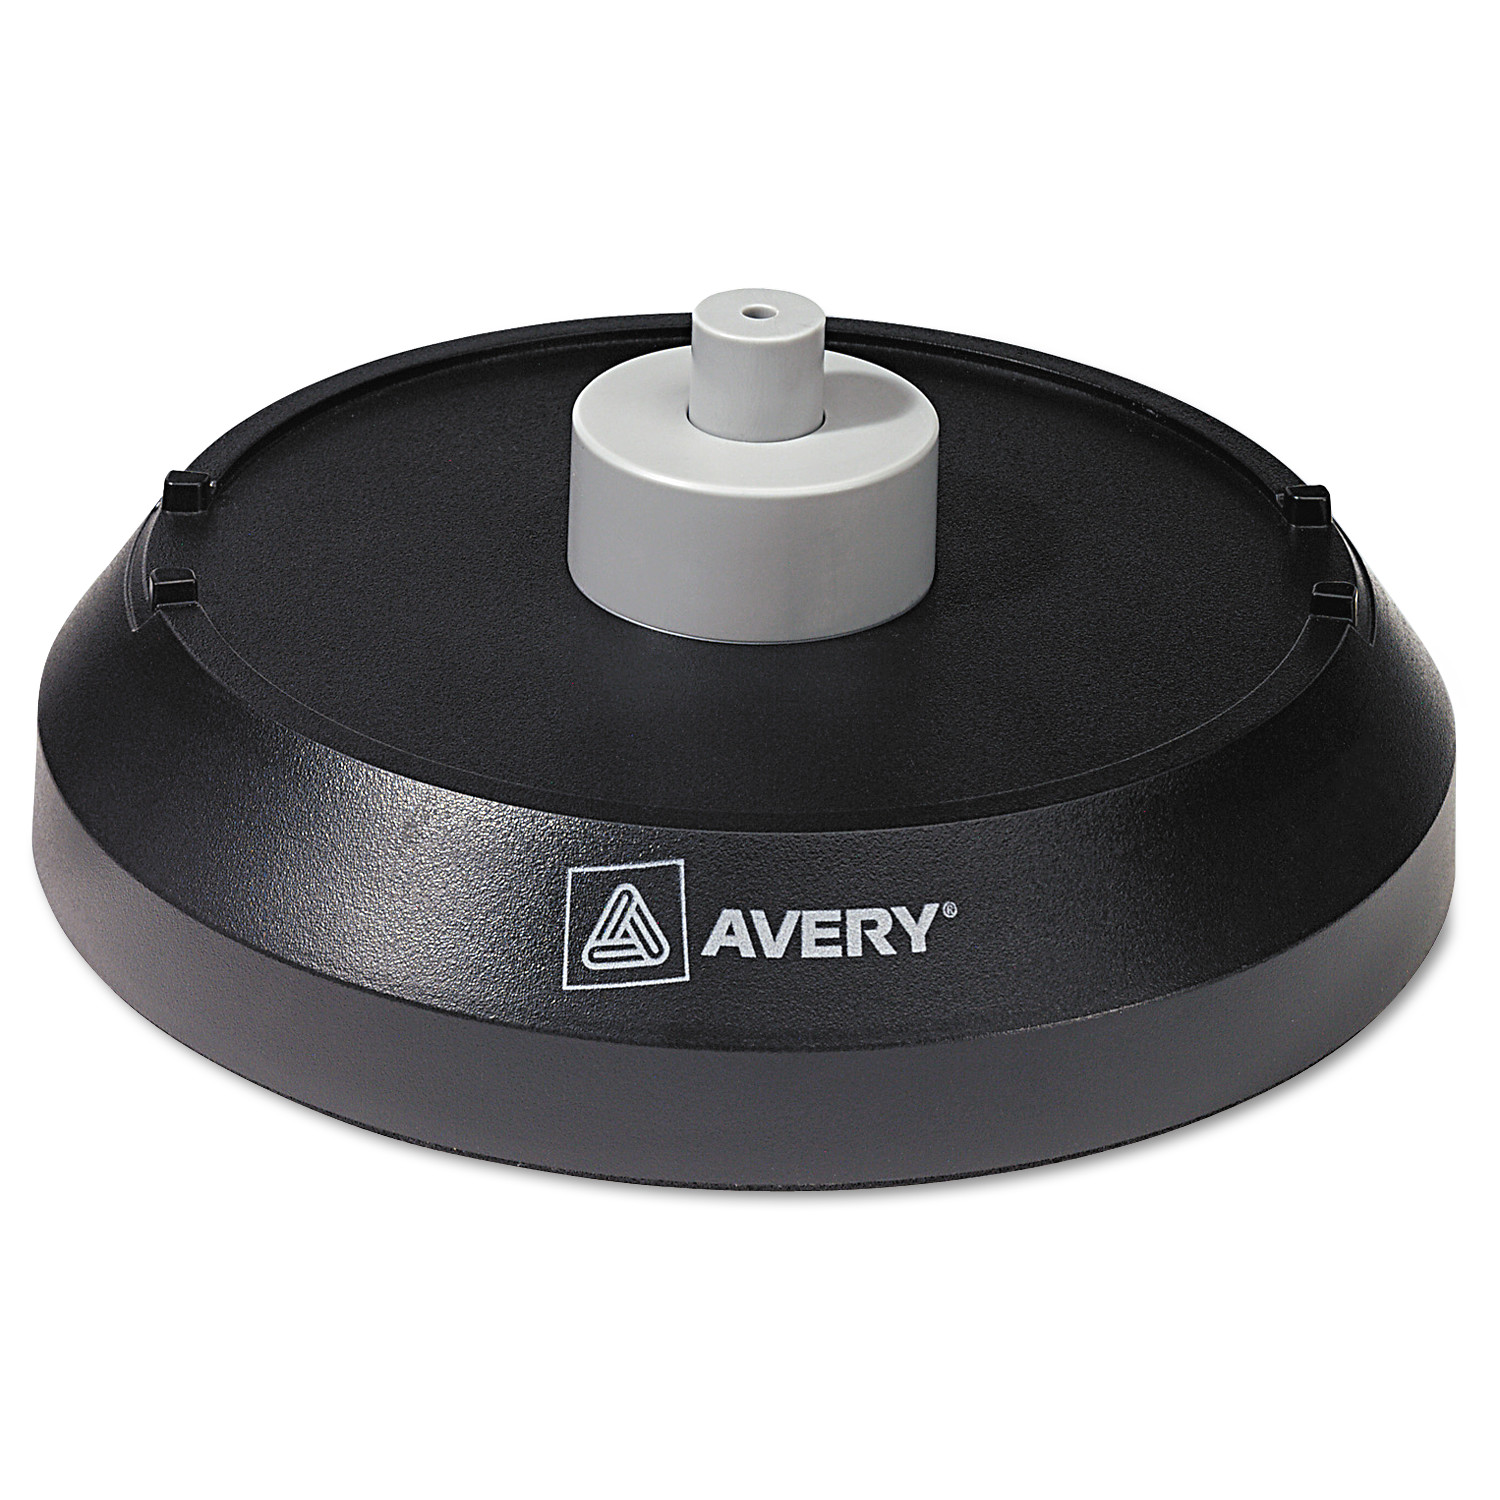 Avery CD/DVD Label Applicator, Black -AVE05699